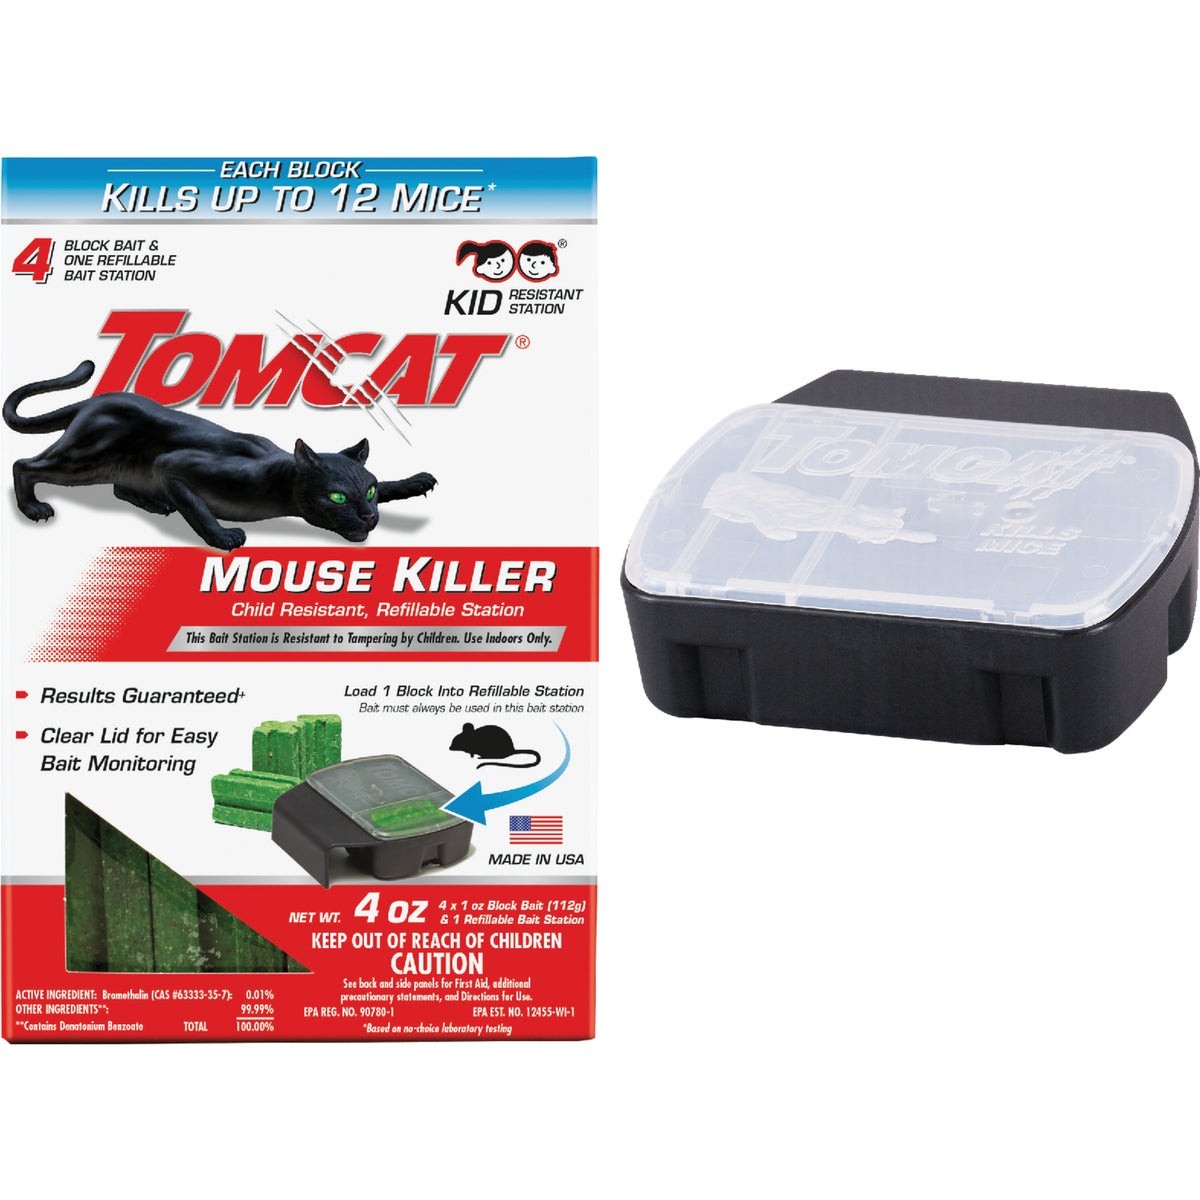 MOUSE BAIT STATION 1 REF - BL23404 by Motomco Ltd